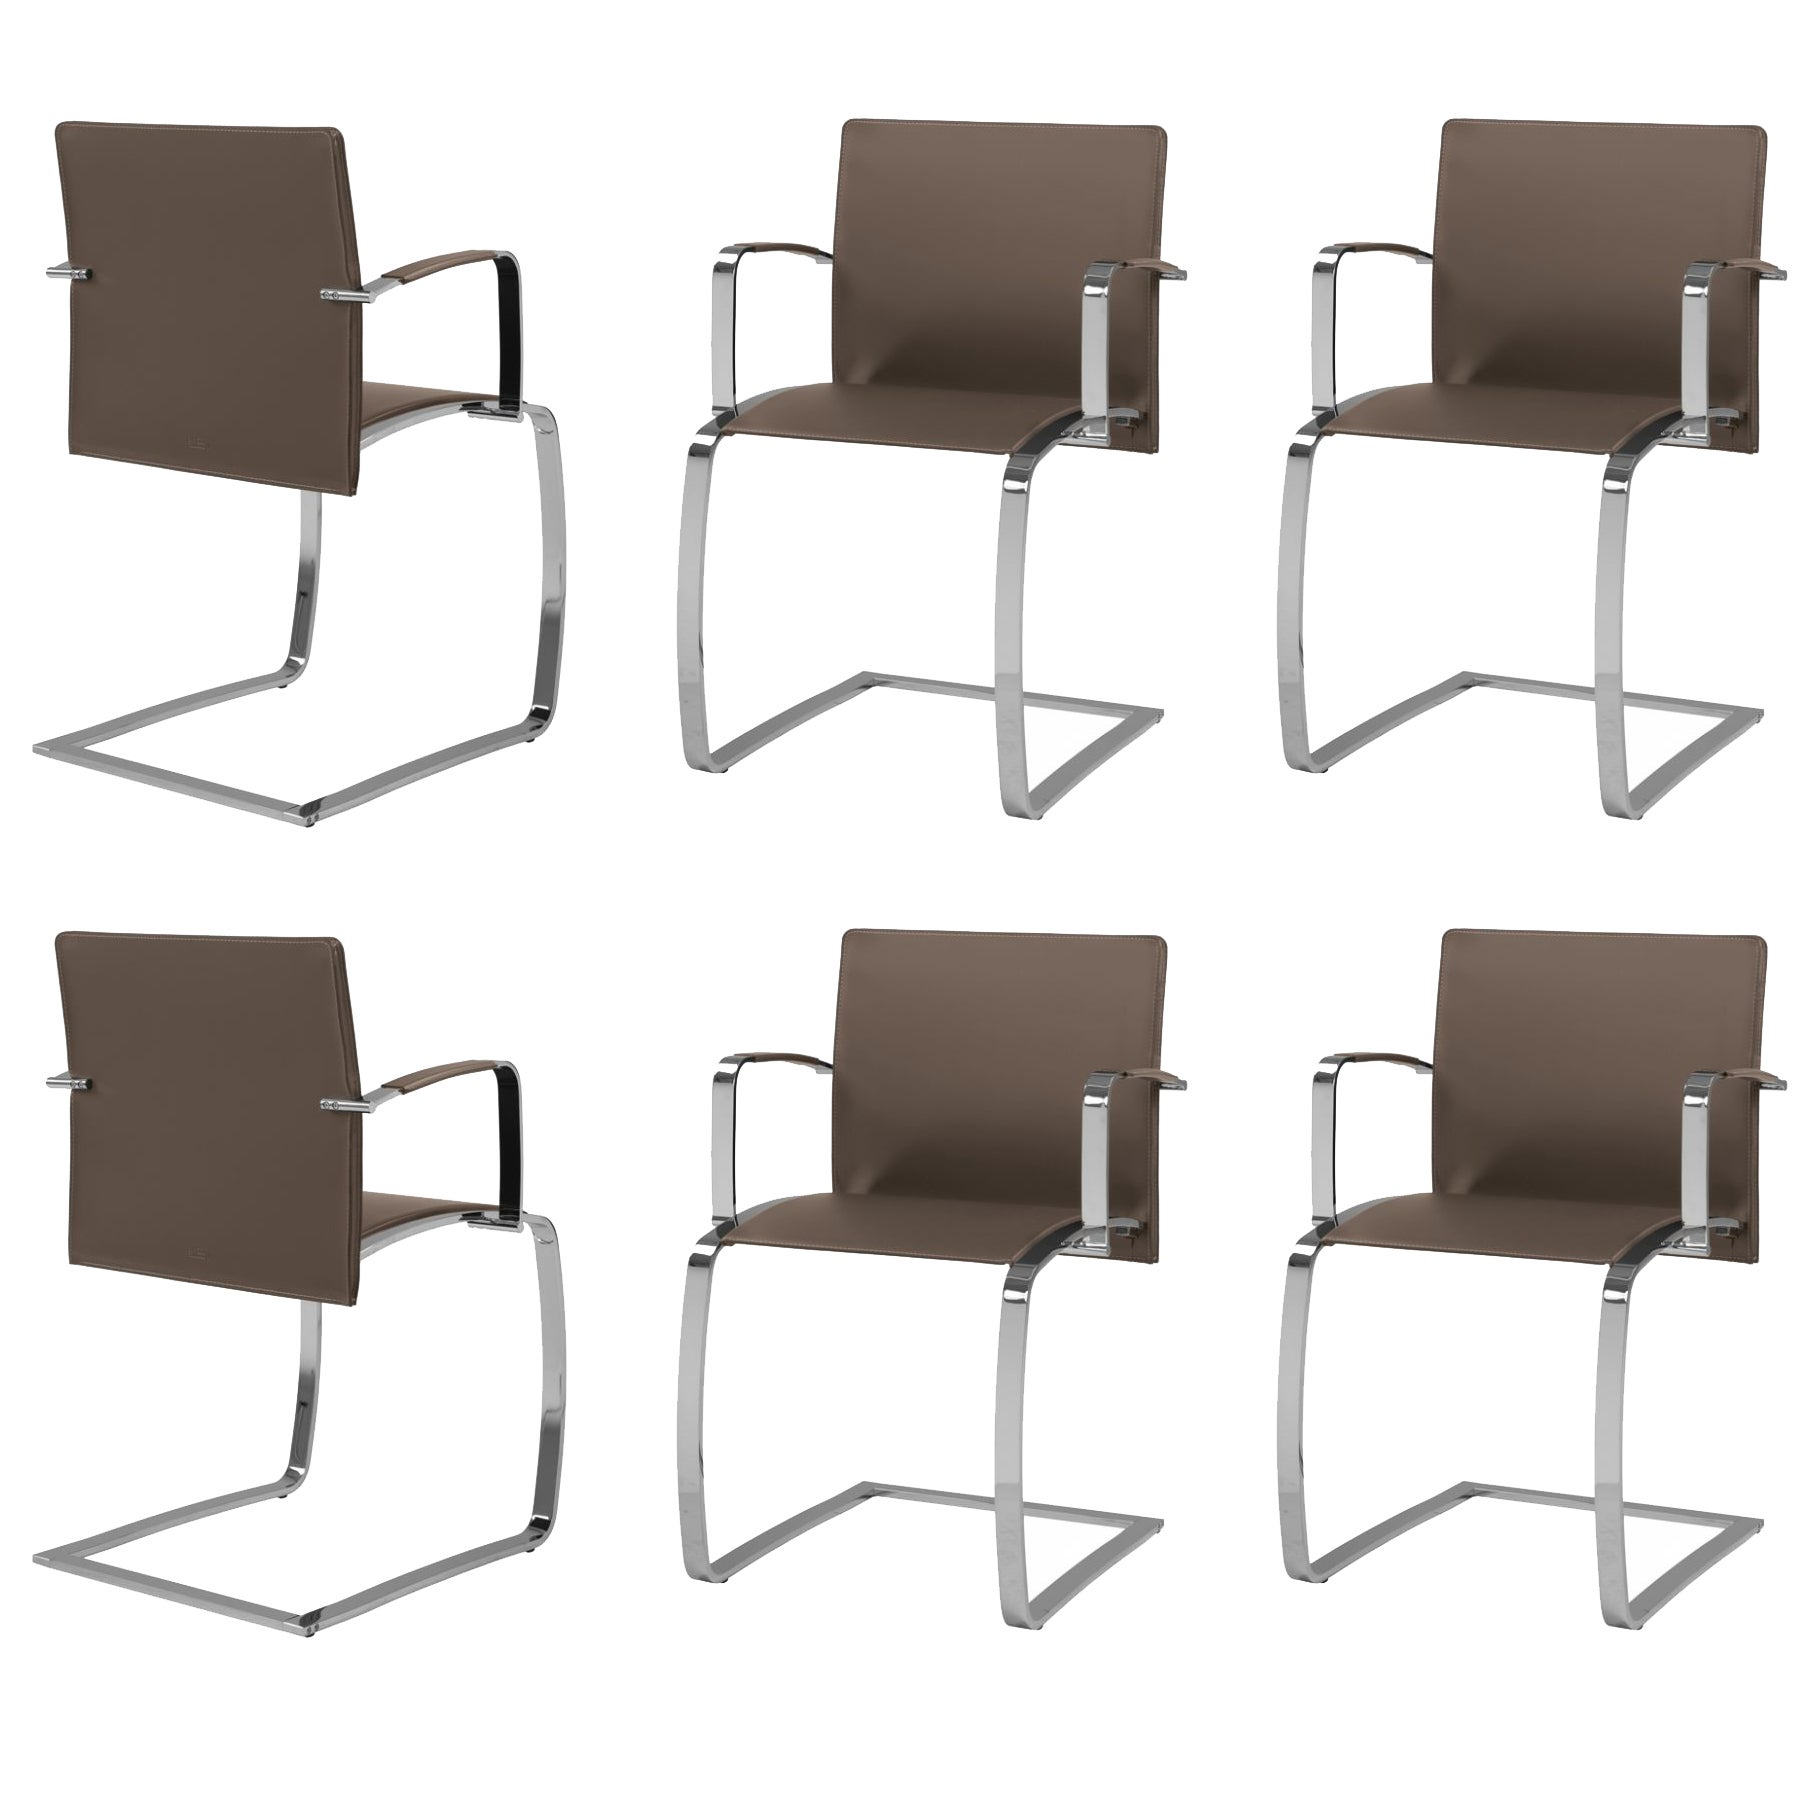 Leather Dining Room Chairs Set Of Six Italian Leather Dining Room Chairs With Arms Chrome Structure